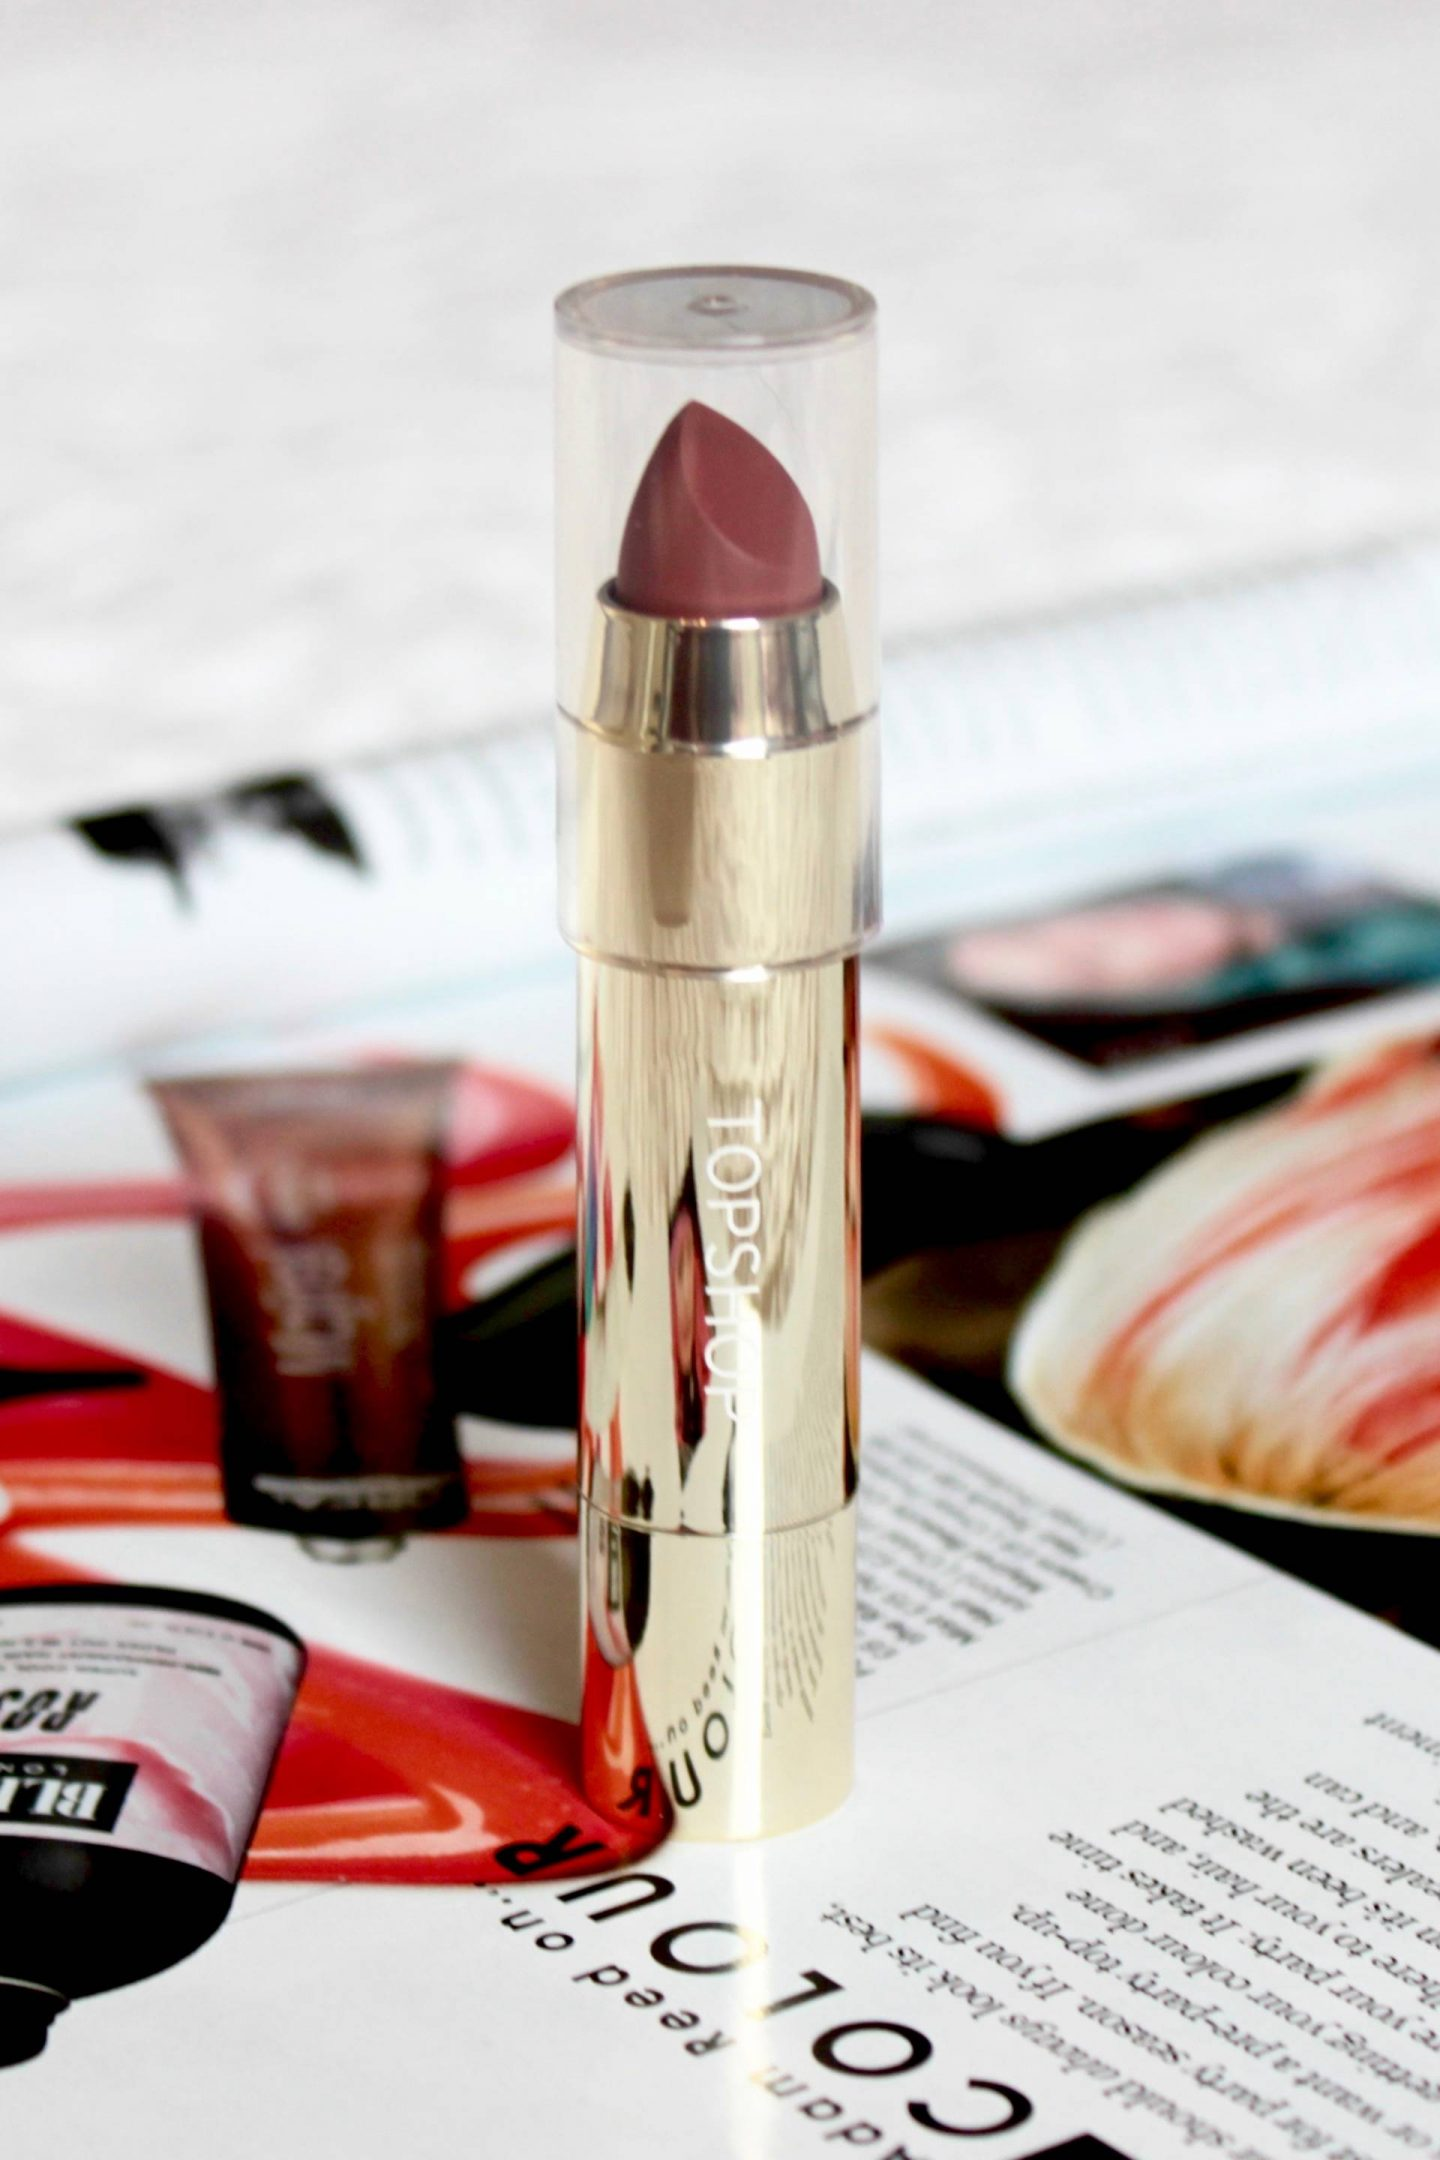 Topshop Beauty gold packaging riddle lip bullet